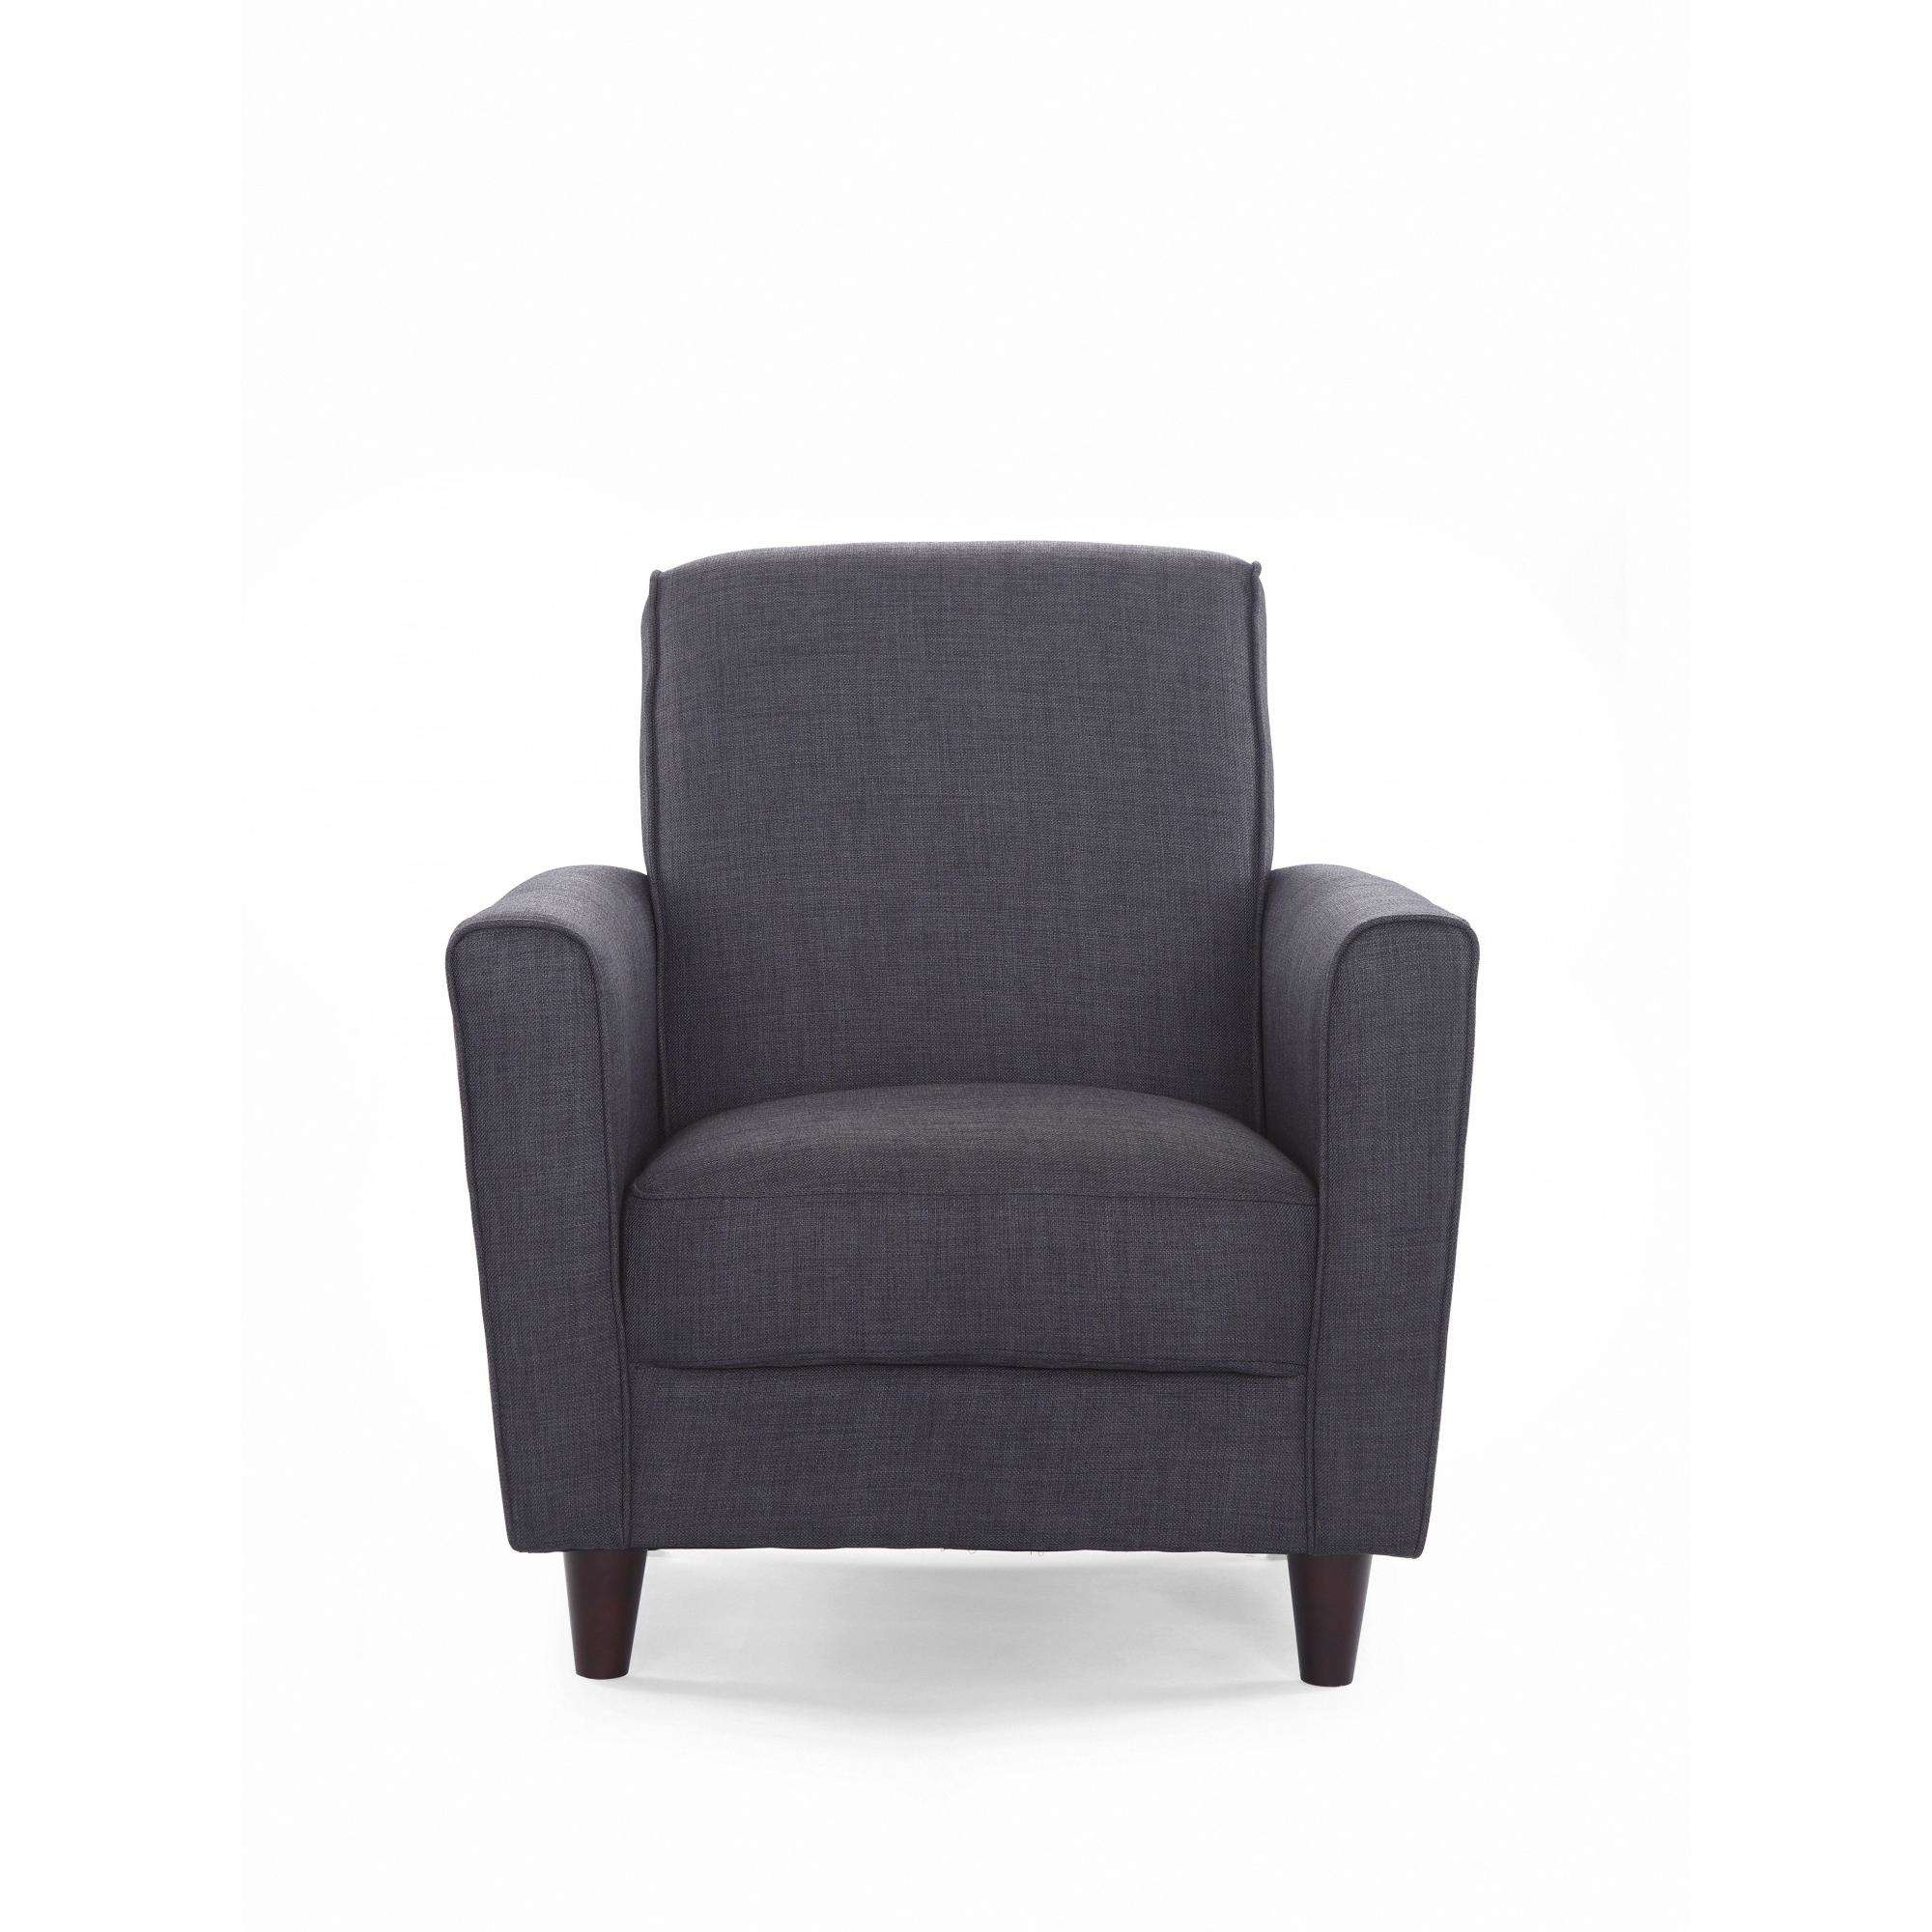 accent chair with arms types of bean bag chairs dhi enzo arm solid woven multiple colors walmart com